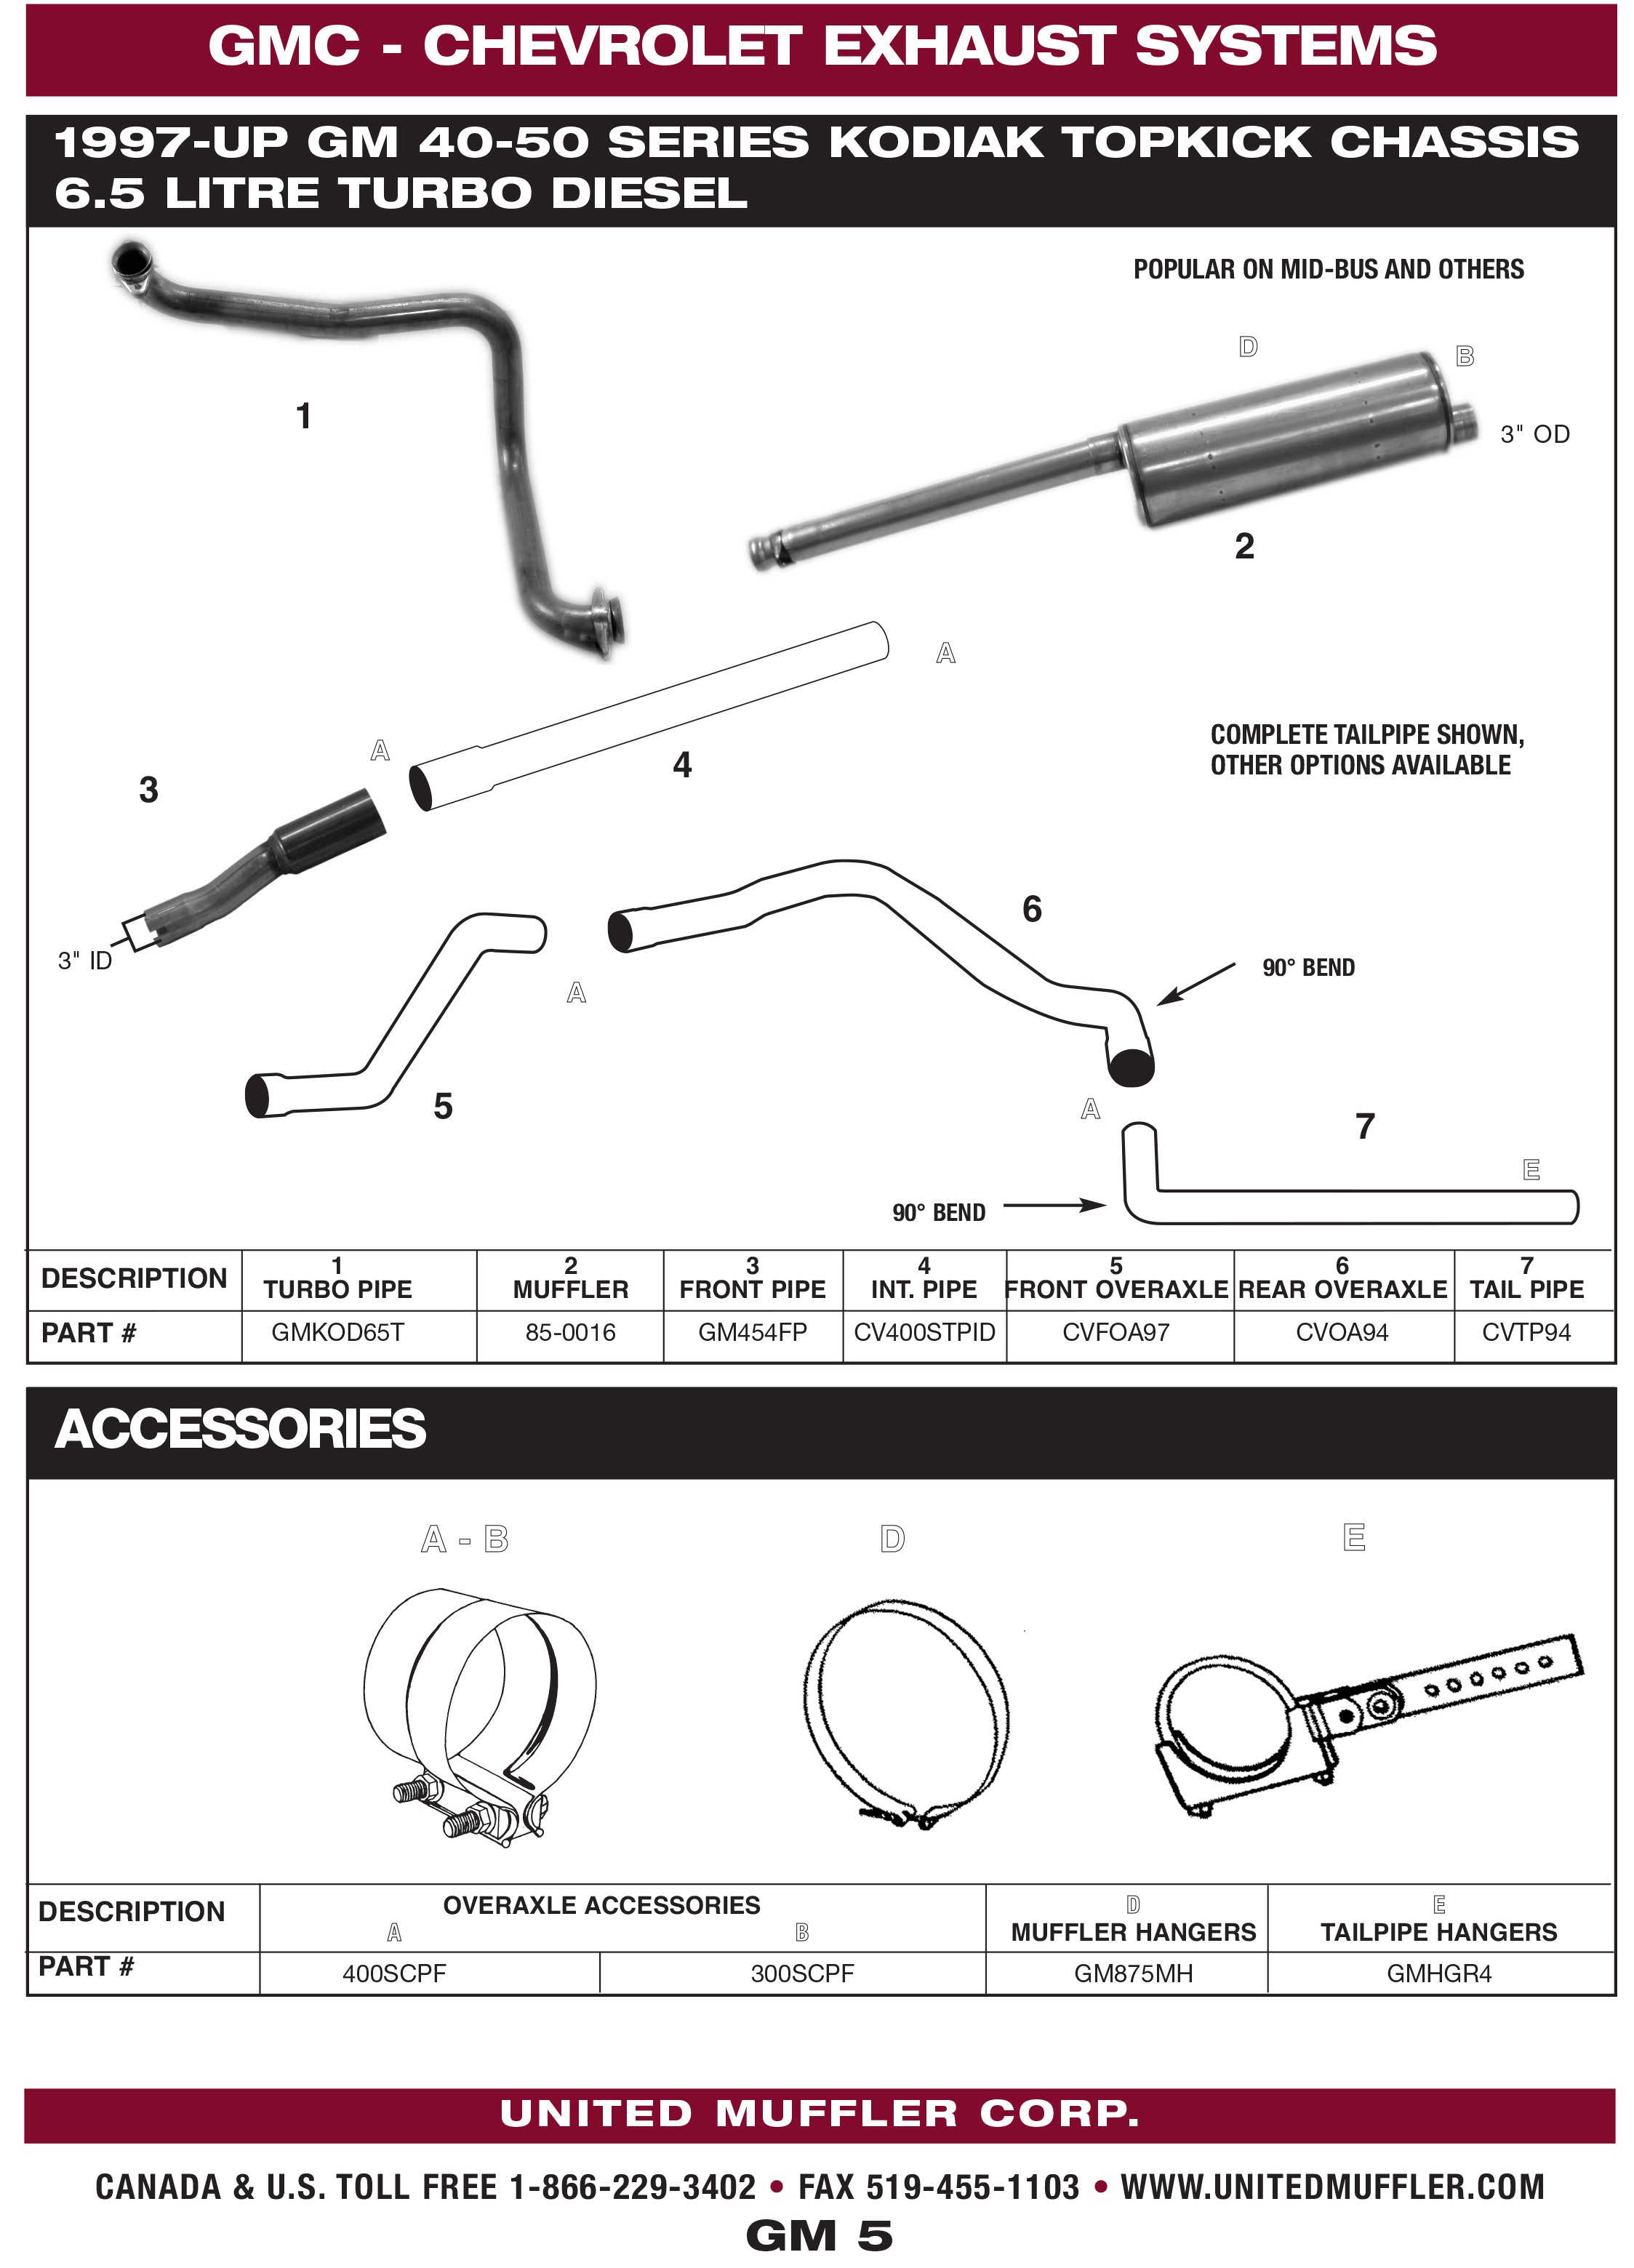 Gm Parts Diagrams with Part Numbers Chev Gmc Of Gm Parts Diagrams with Part Numbers